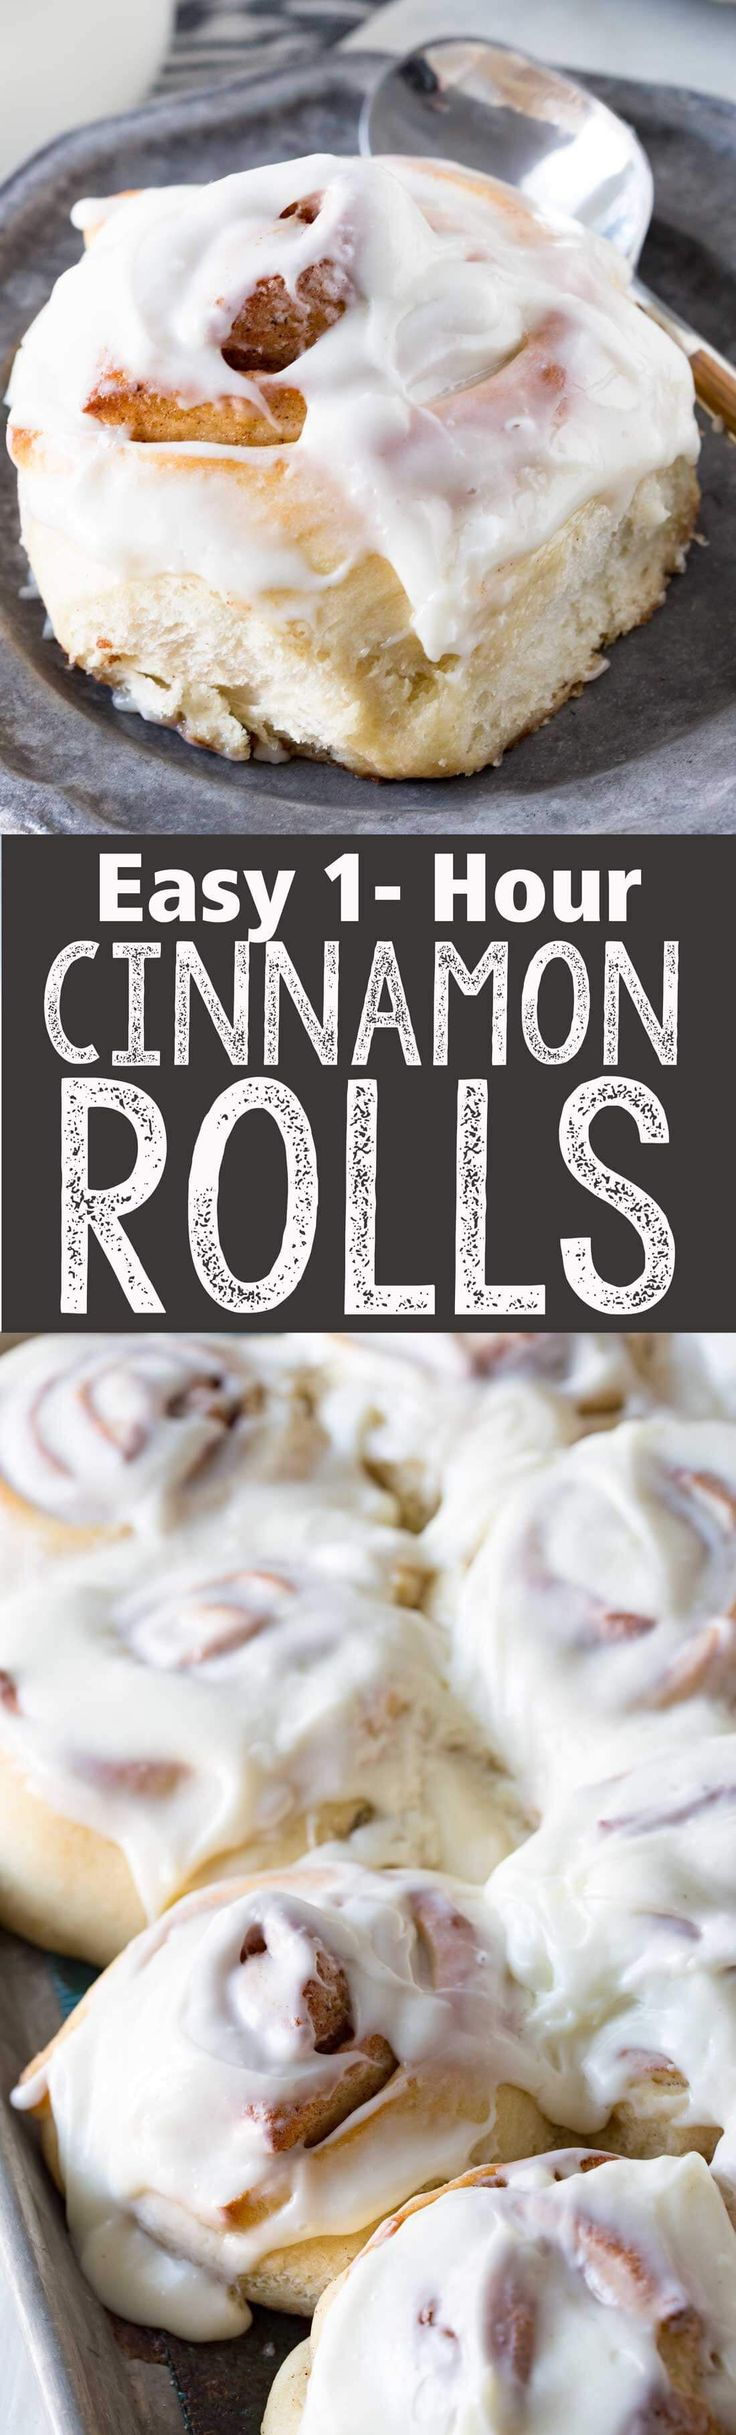 Easy 1 hour cinnamon rolls